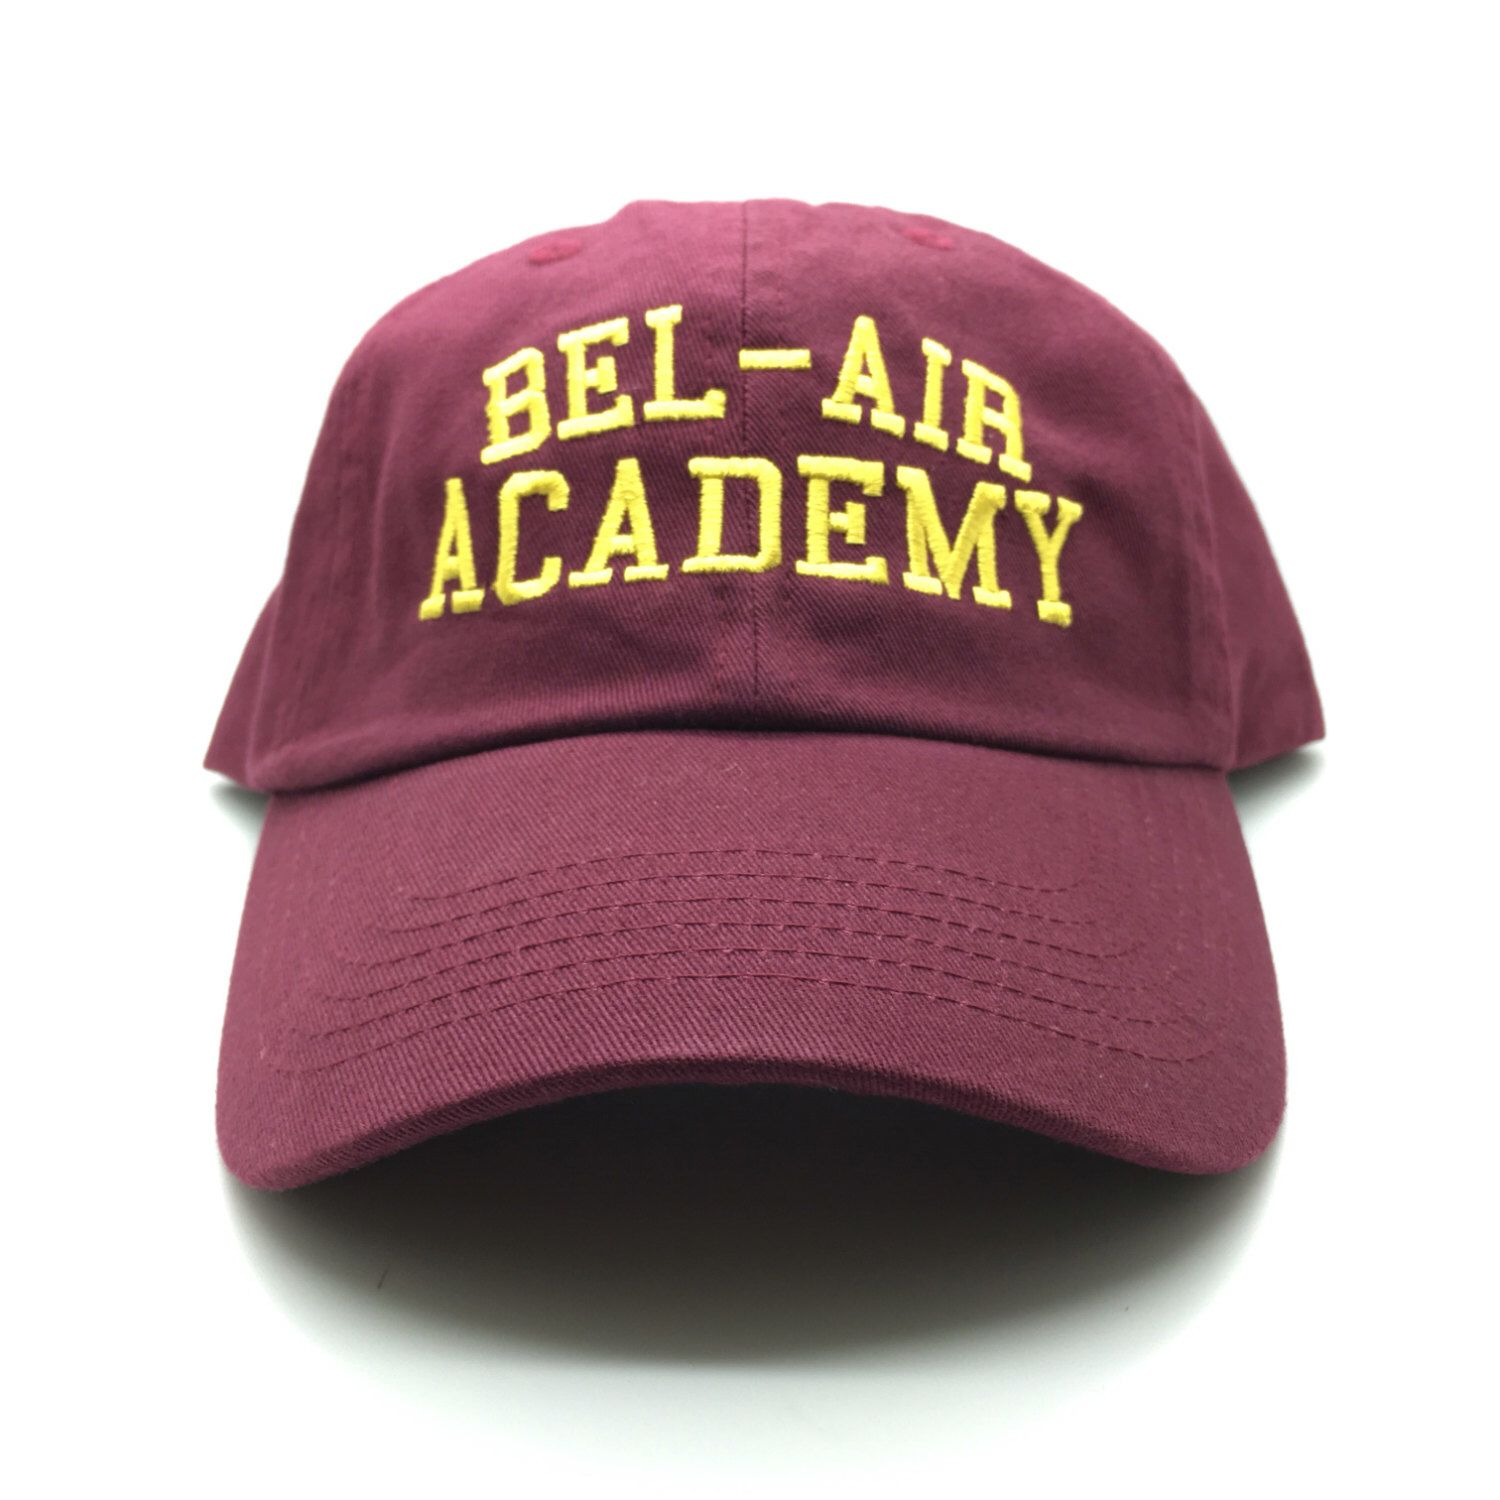 e230205e Will Smith Fresh Prince Fabolous Bel-Air Academy Dad Cap Hat 4 Jersey HAT  ONLY